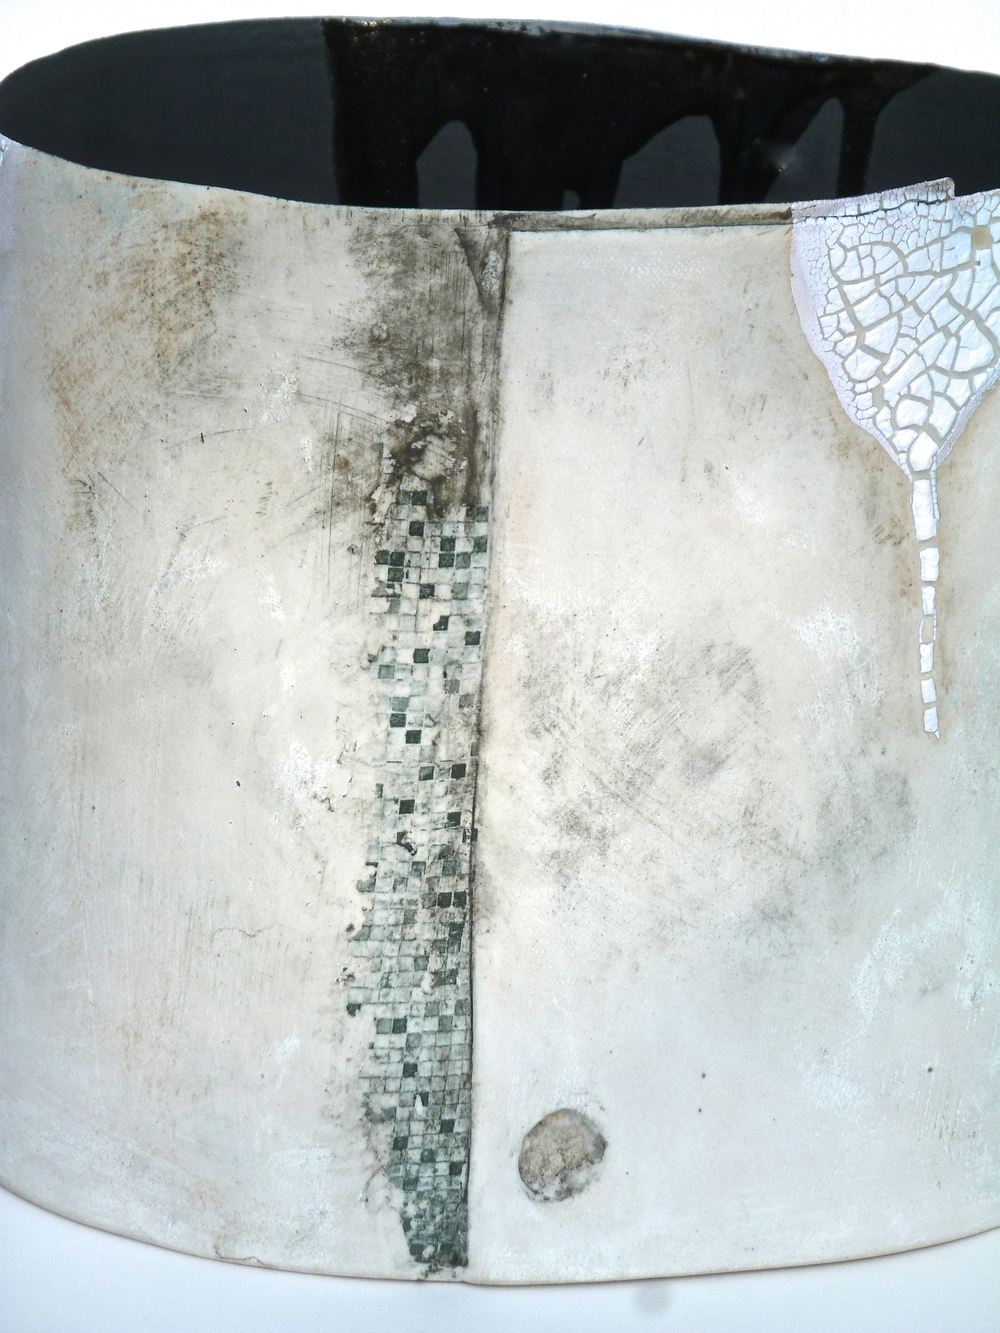 Stoneware Vessel: H. 23cm W.19cm. Close up: layers of slip, glazes, oxides, stain, Impressed textures and transfers.